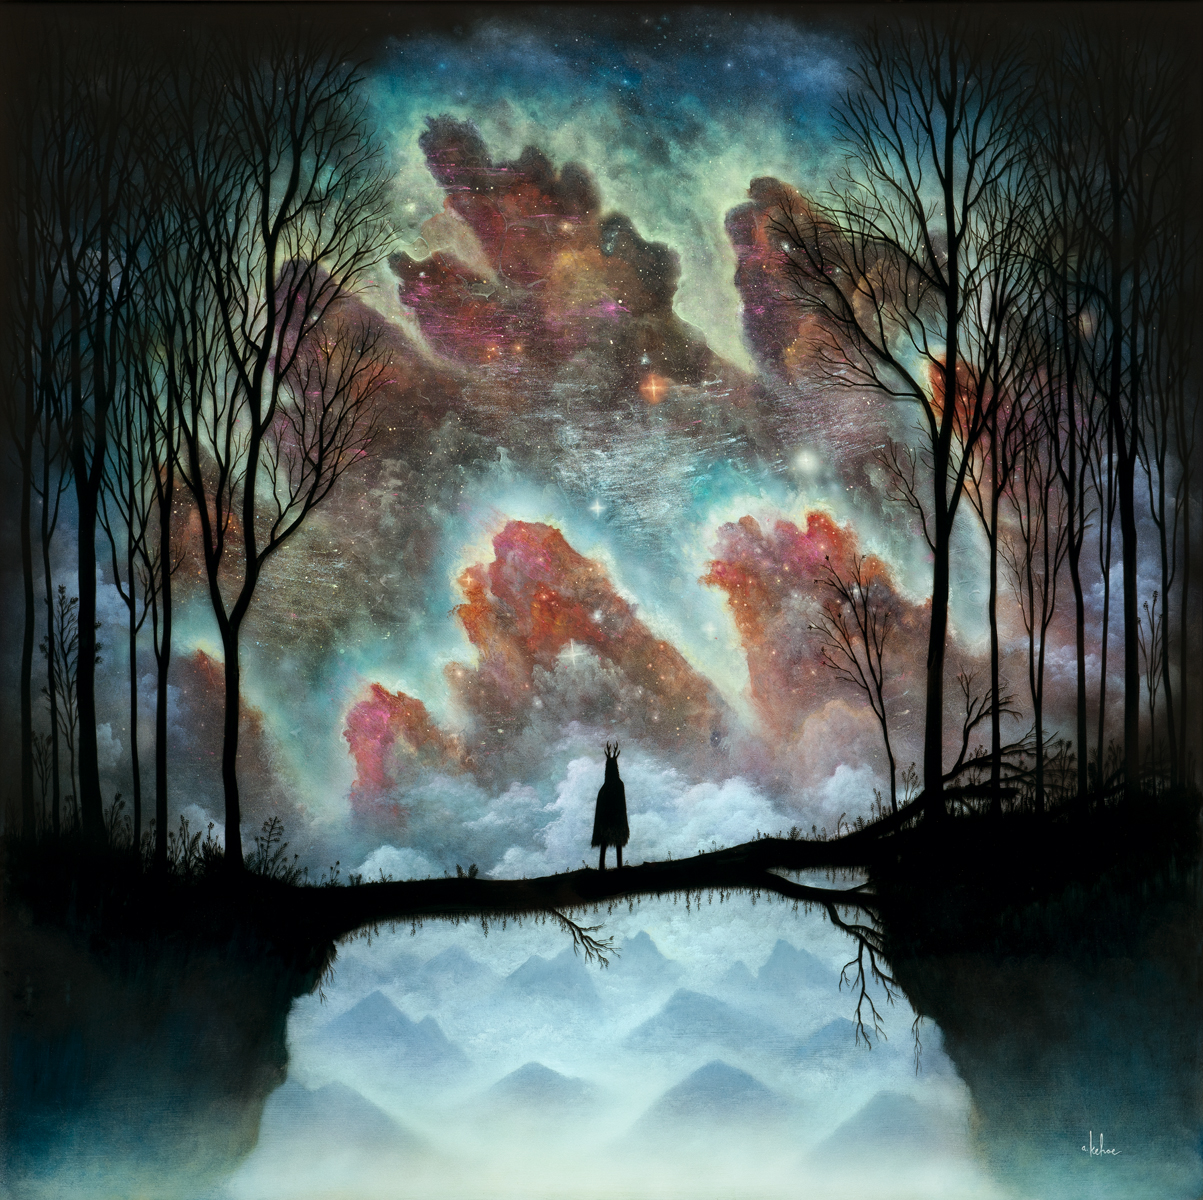 Image of The Enchanted Art of Andy Kehoe